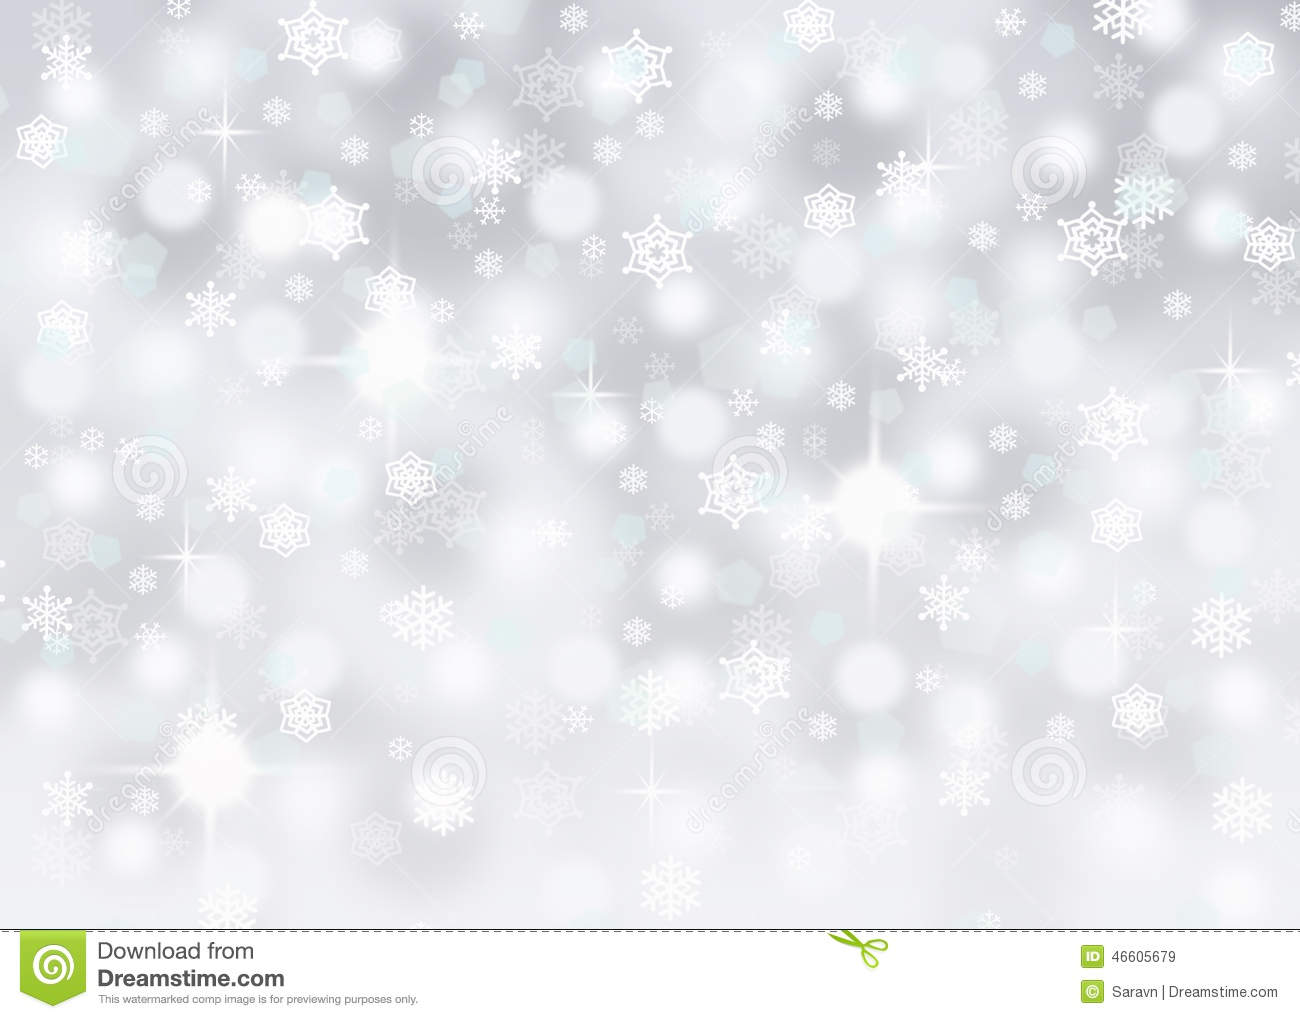 Silver bokeh abstract background with falling snowflakes and sparkles